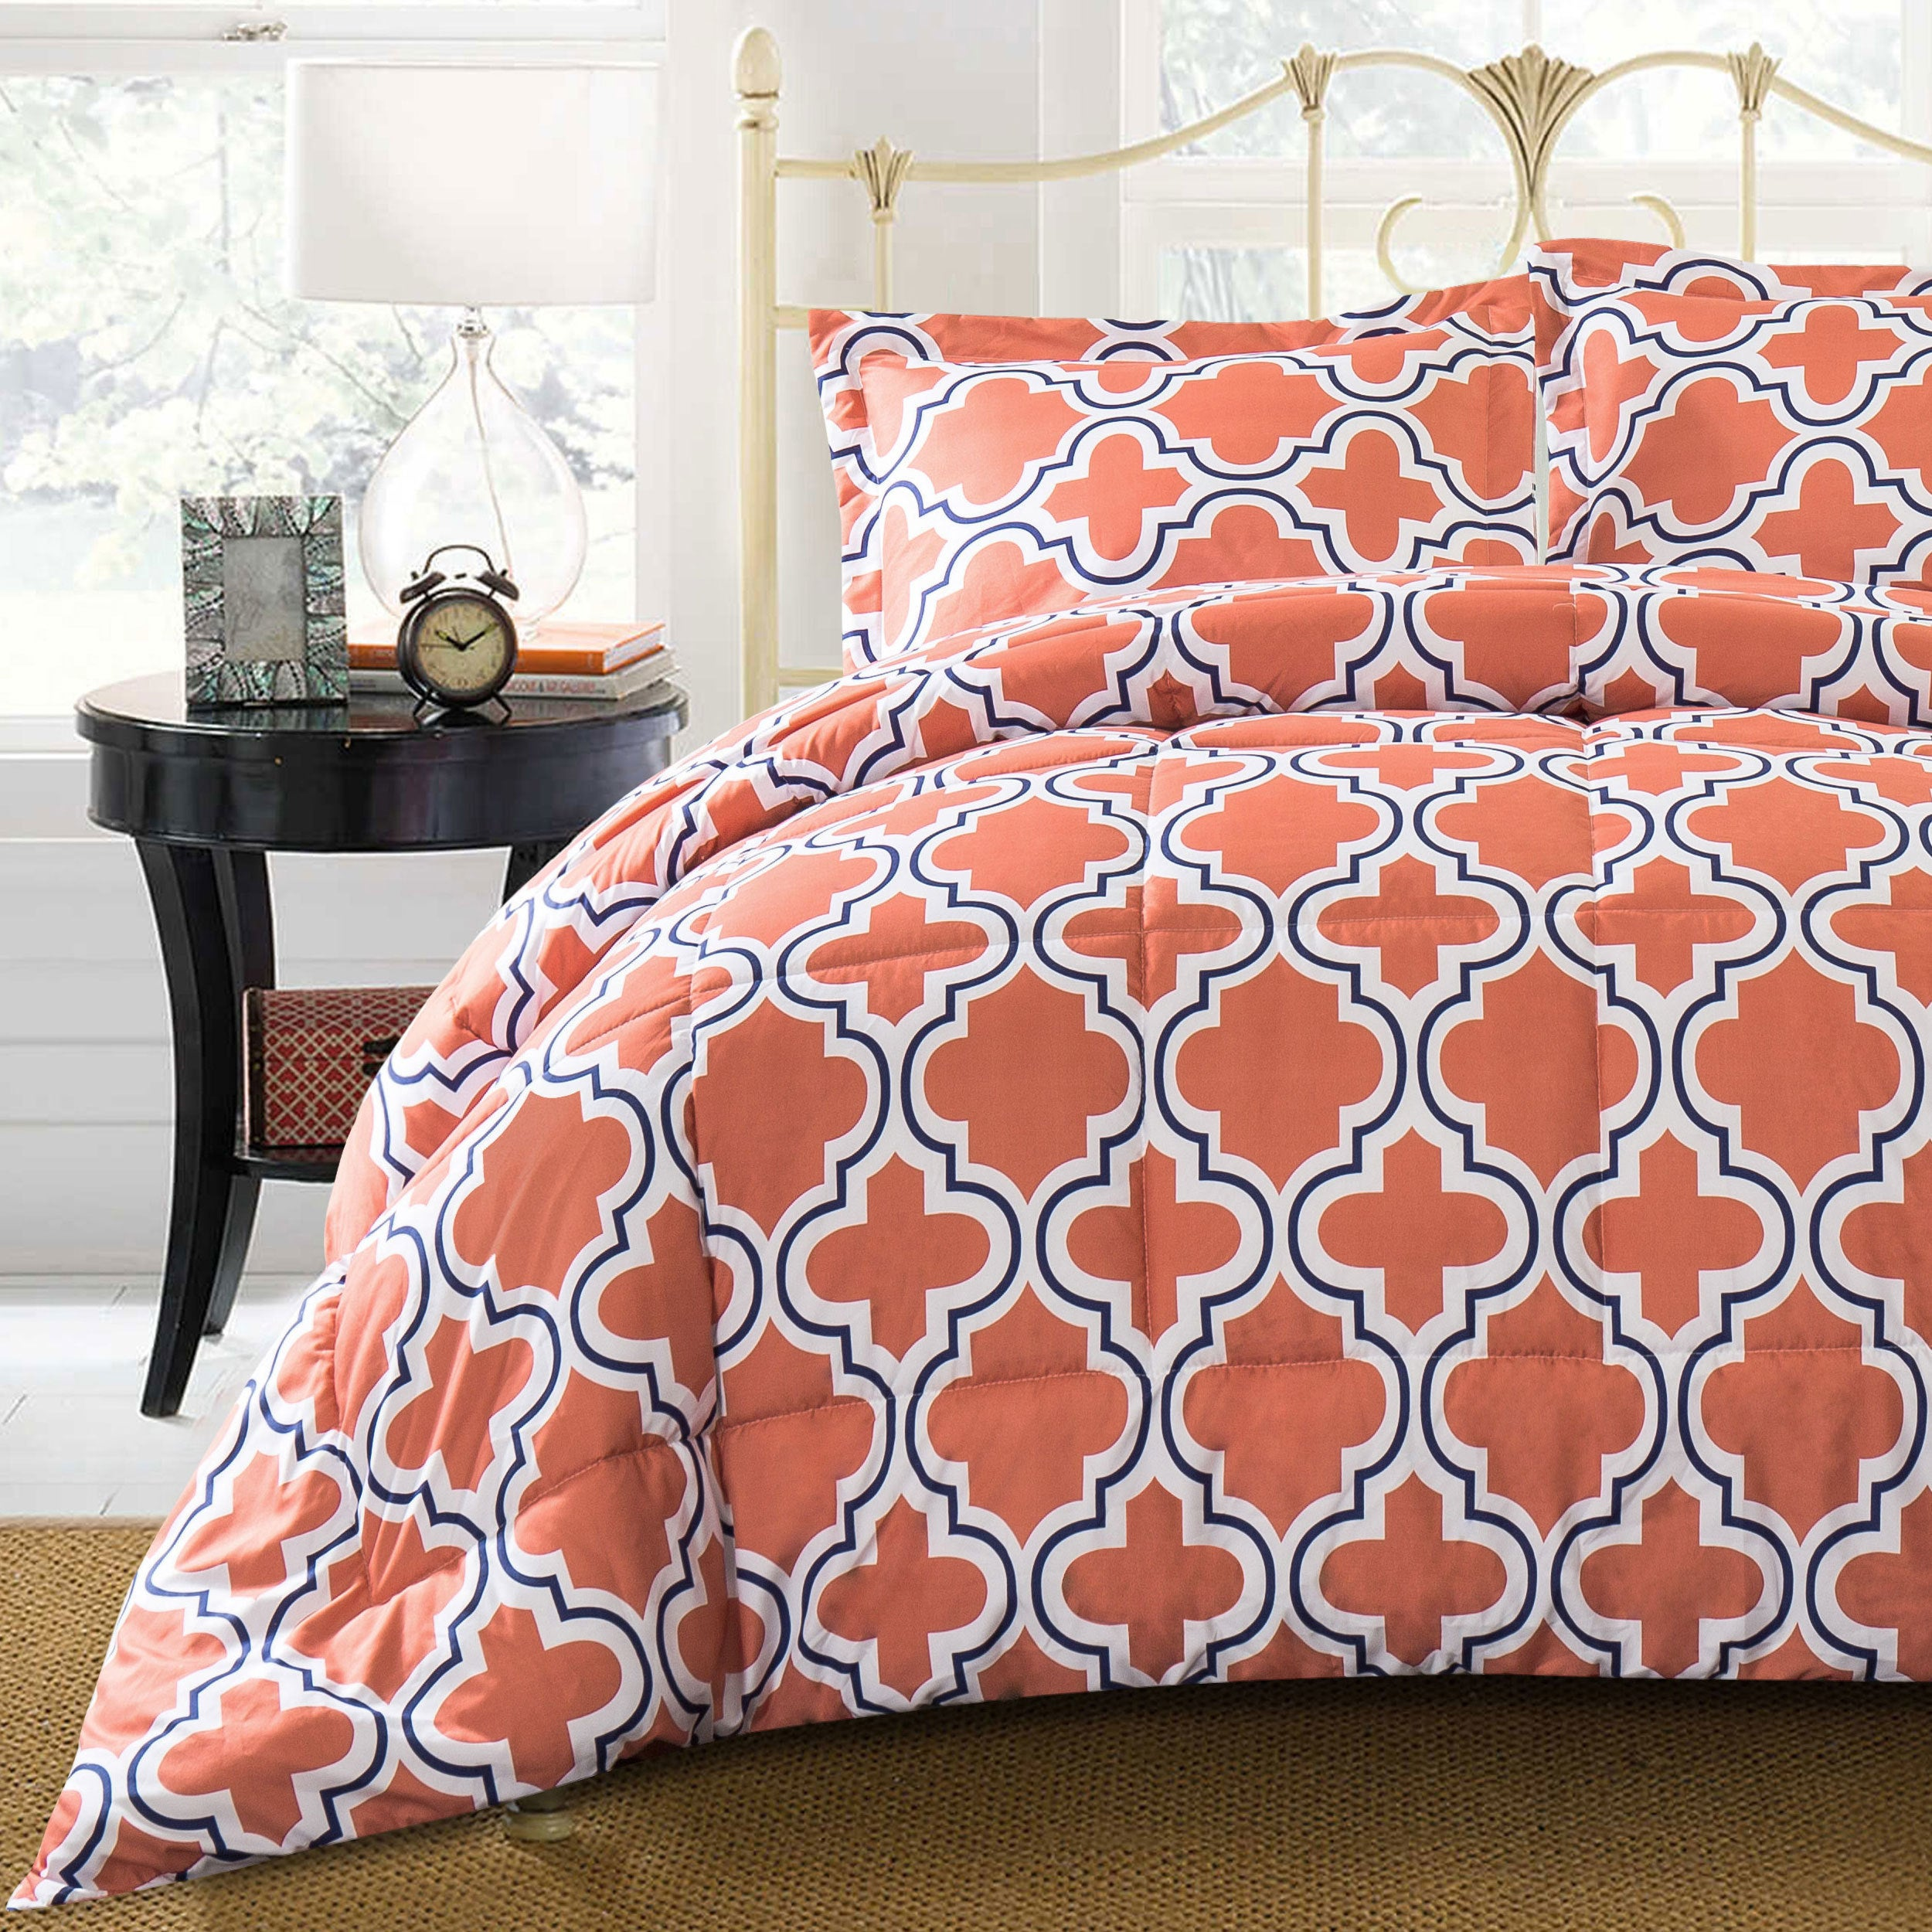 porch overstock bedding bath classics shipping mini carytown den down free reversible alternative today comforter plush product set crenshaw home